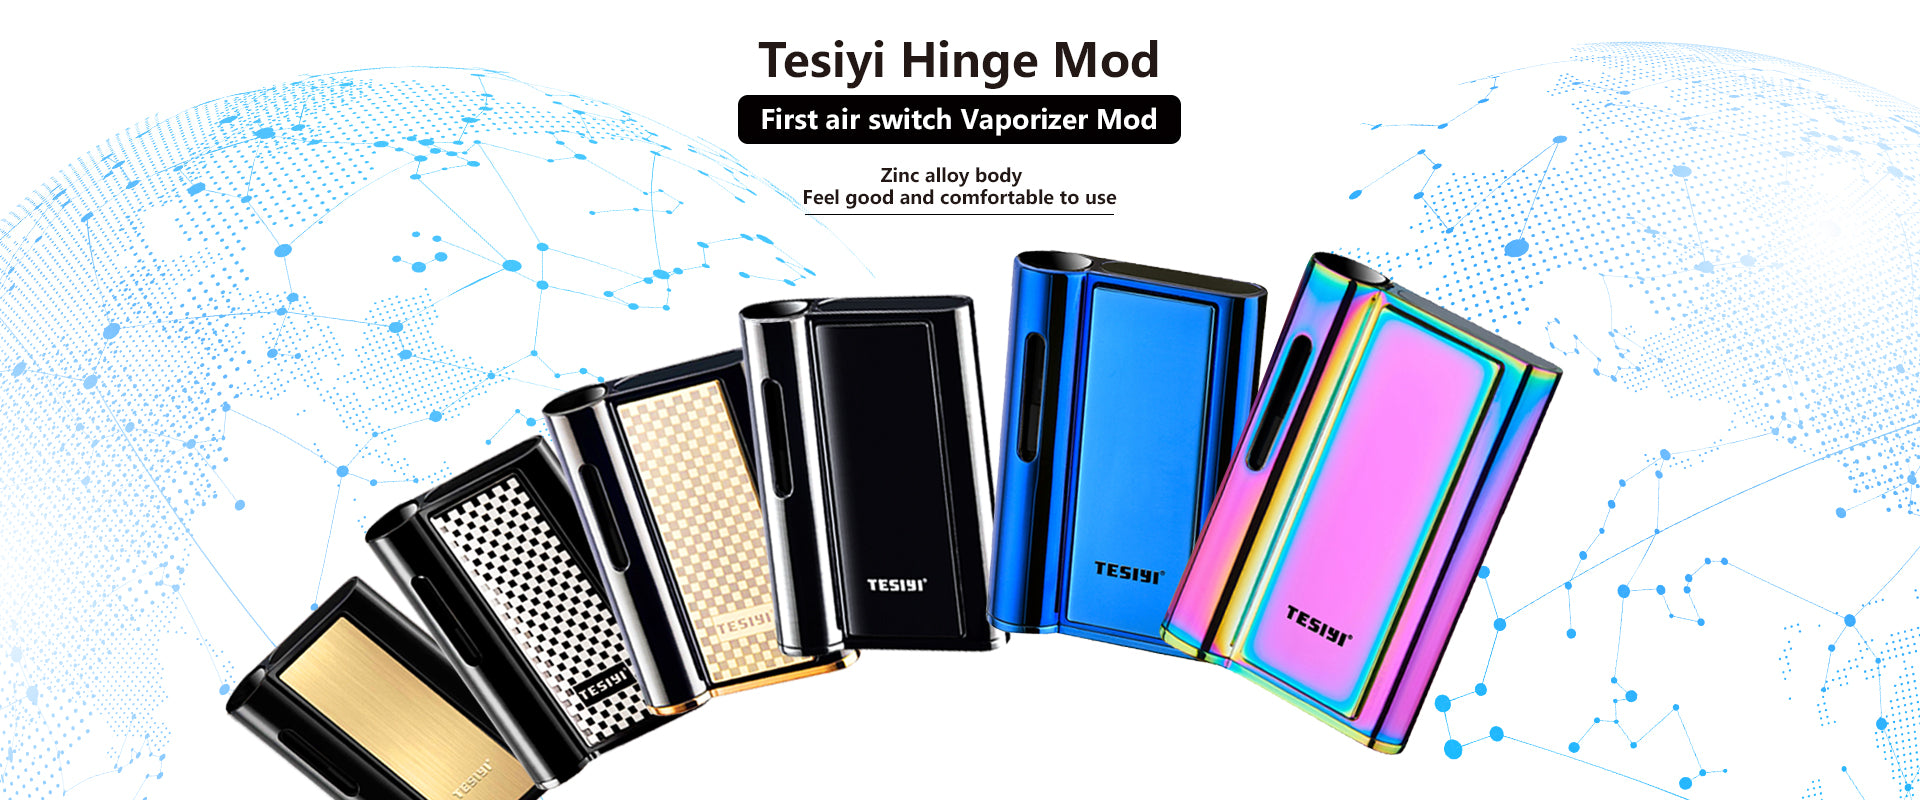 Hinge Mod Full Wattage Out put,450mAh BATTERY